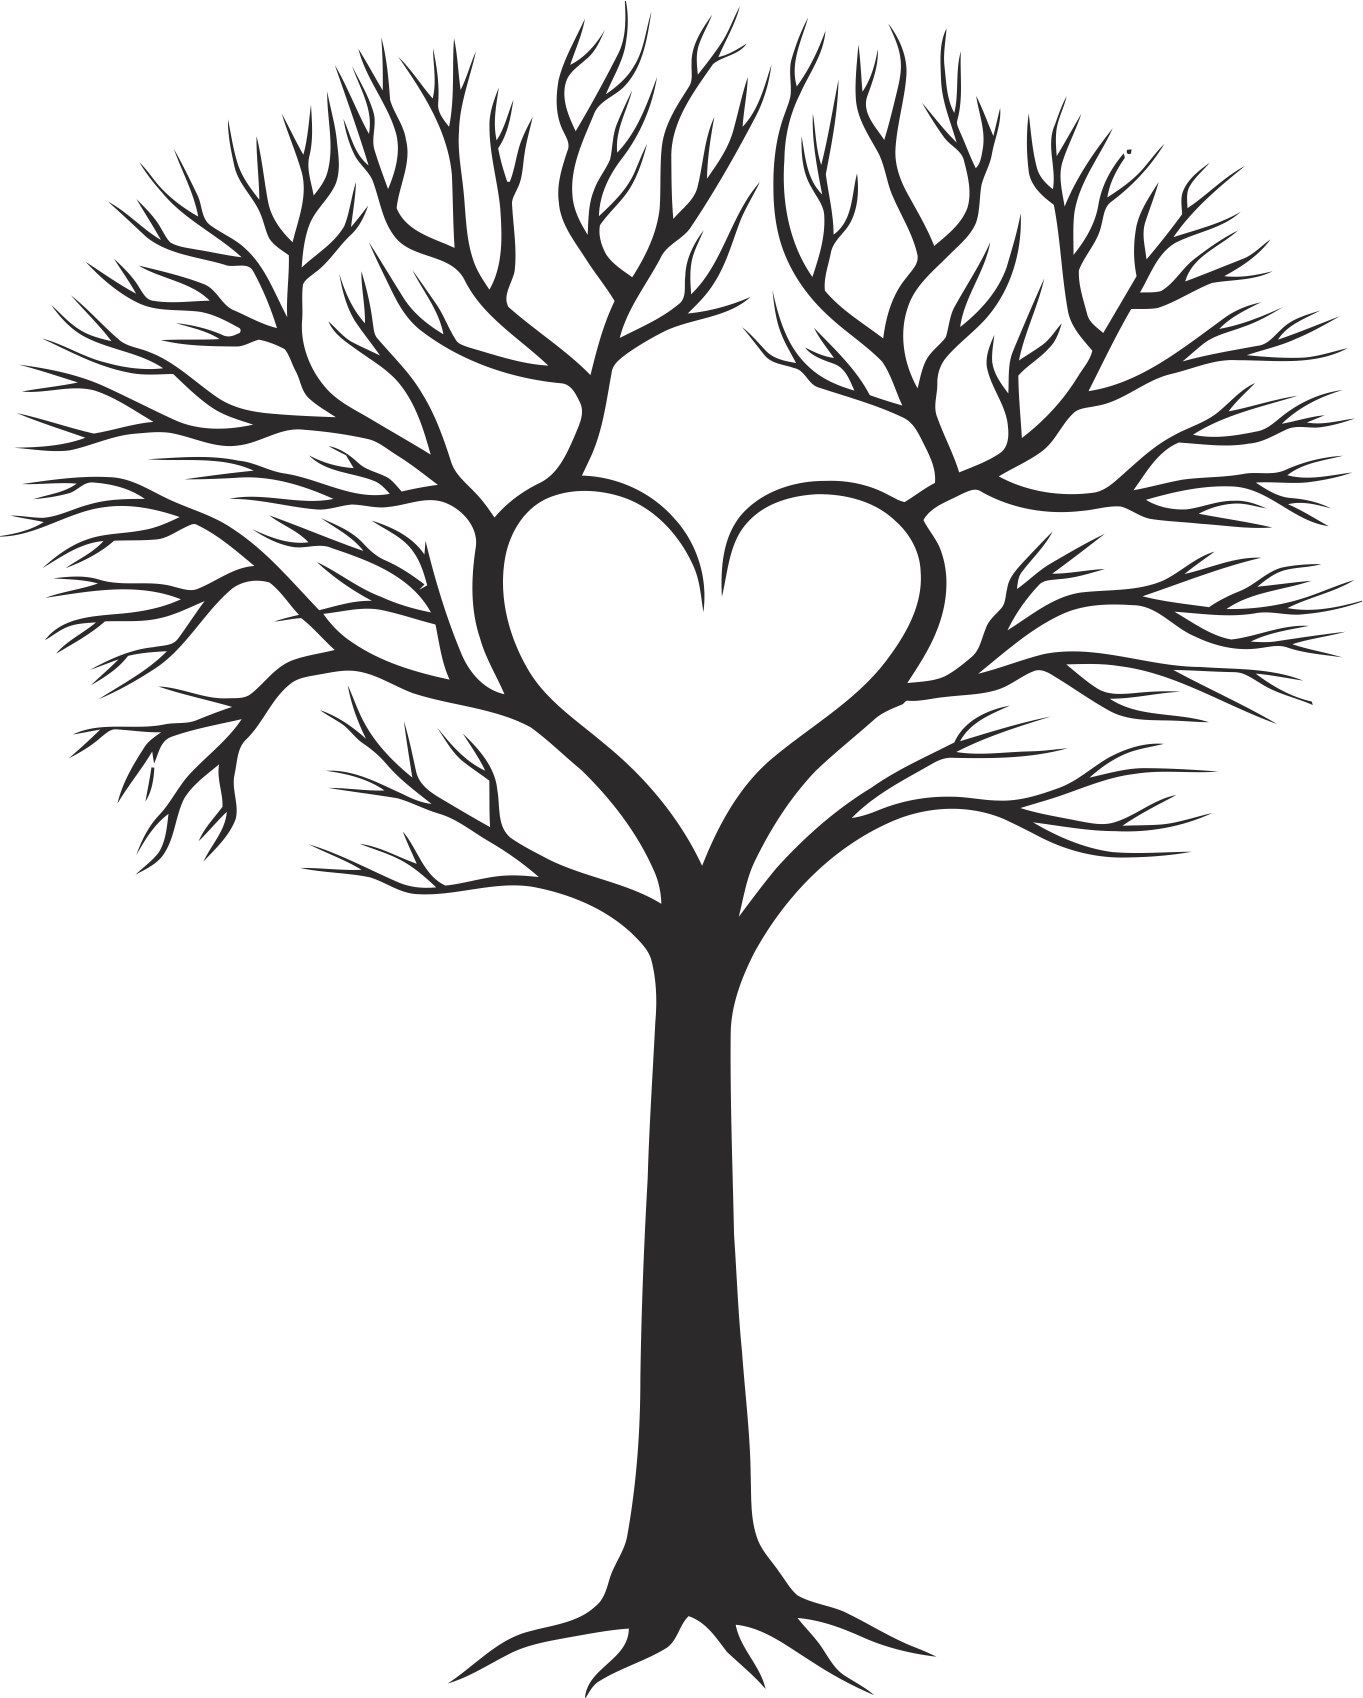 Family Tree With Heart Free CDR Vectors Art